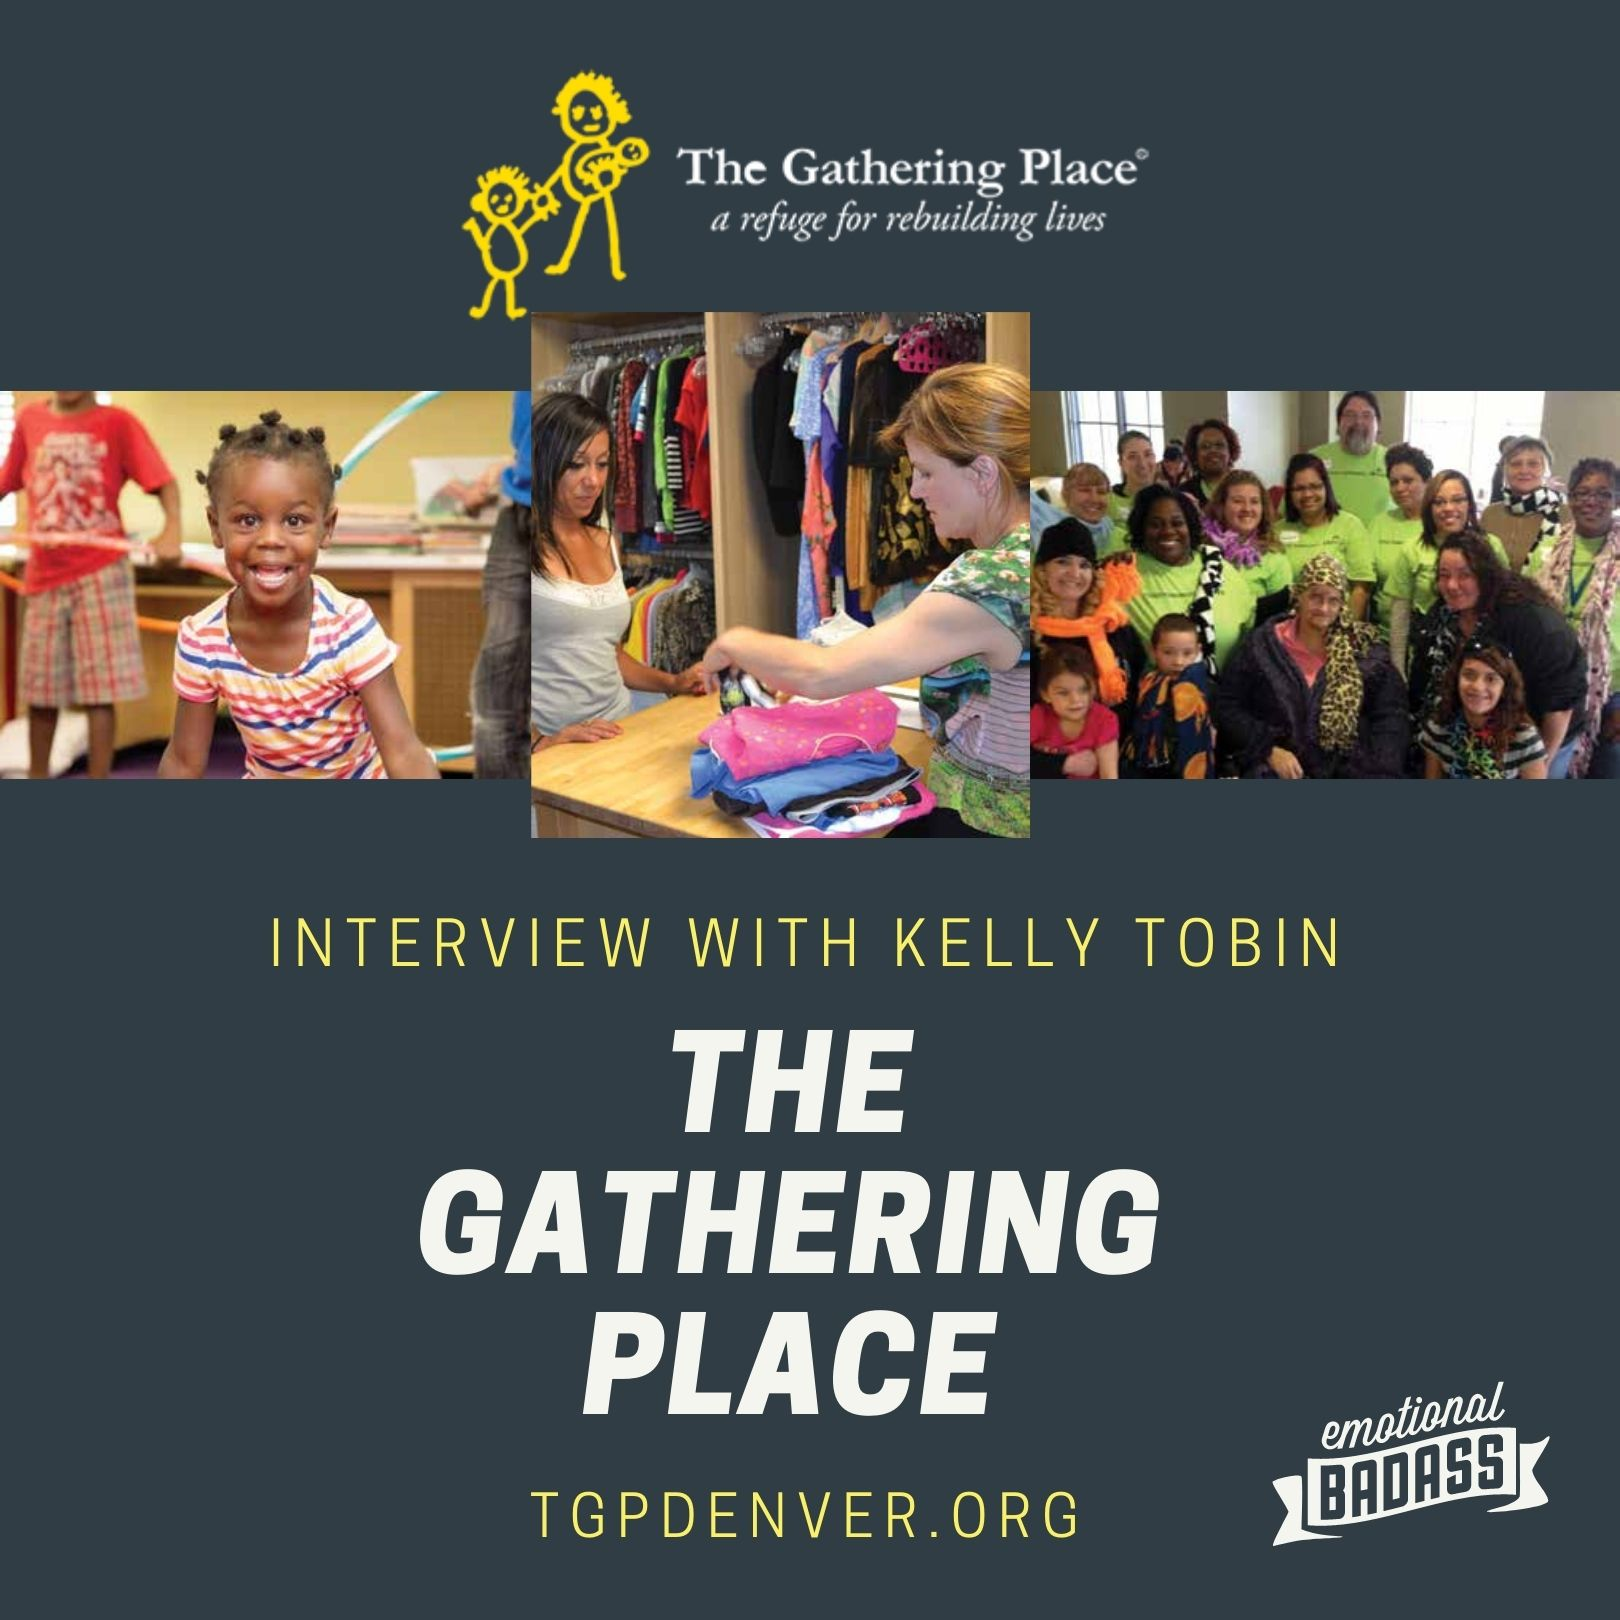 Interview with The Gathering Place - Kelly Tobin